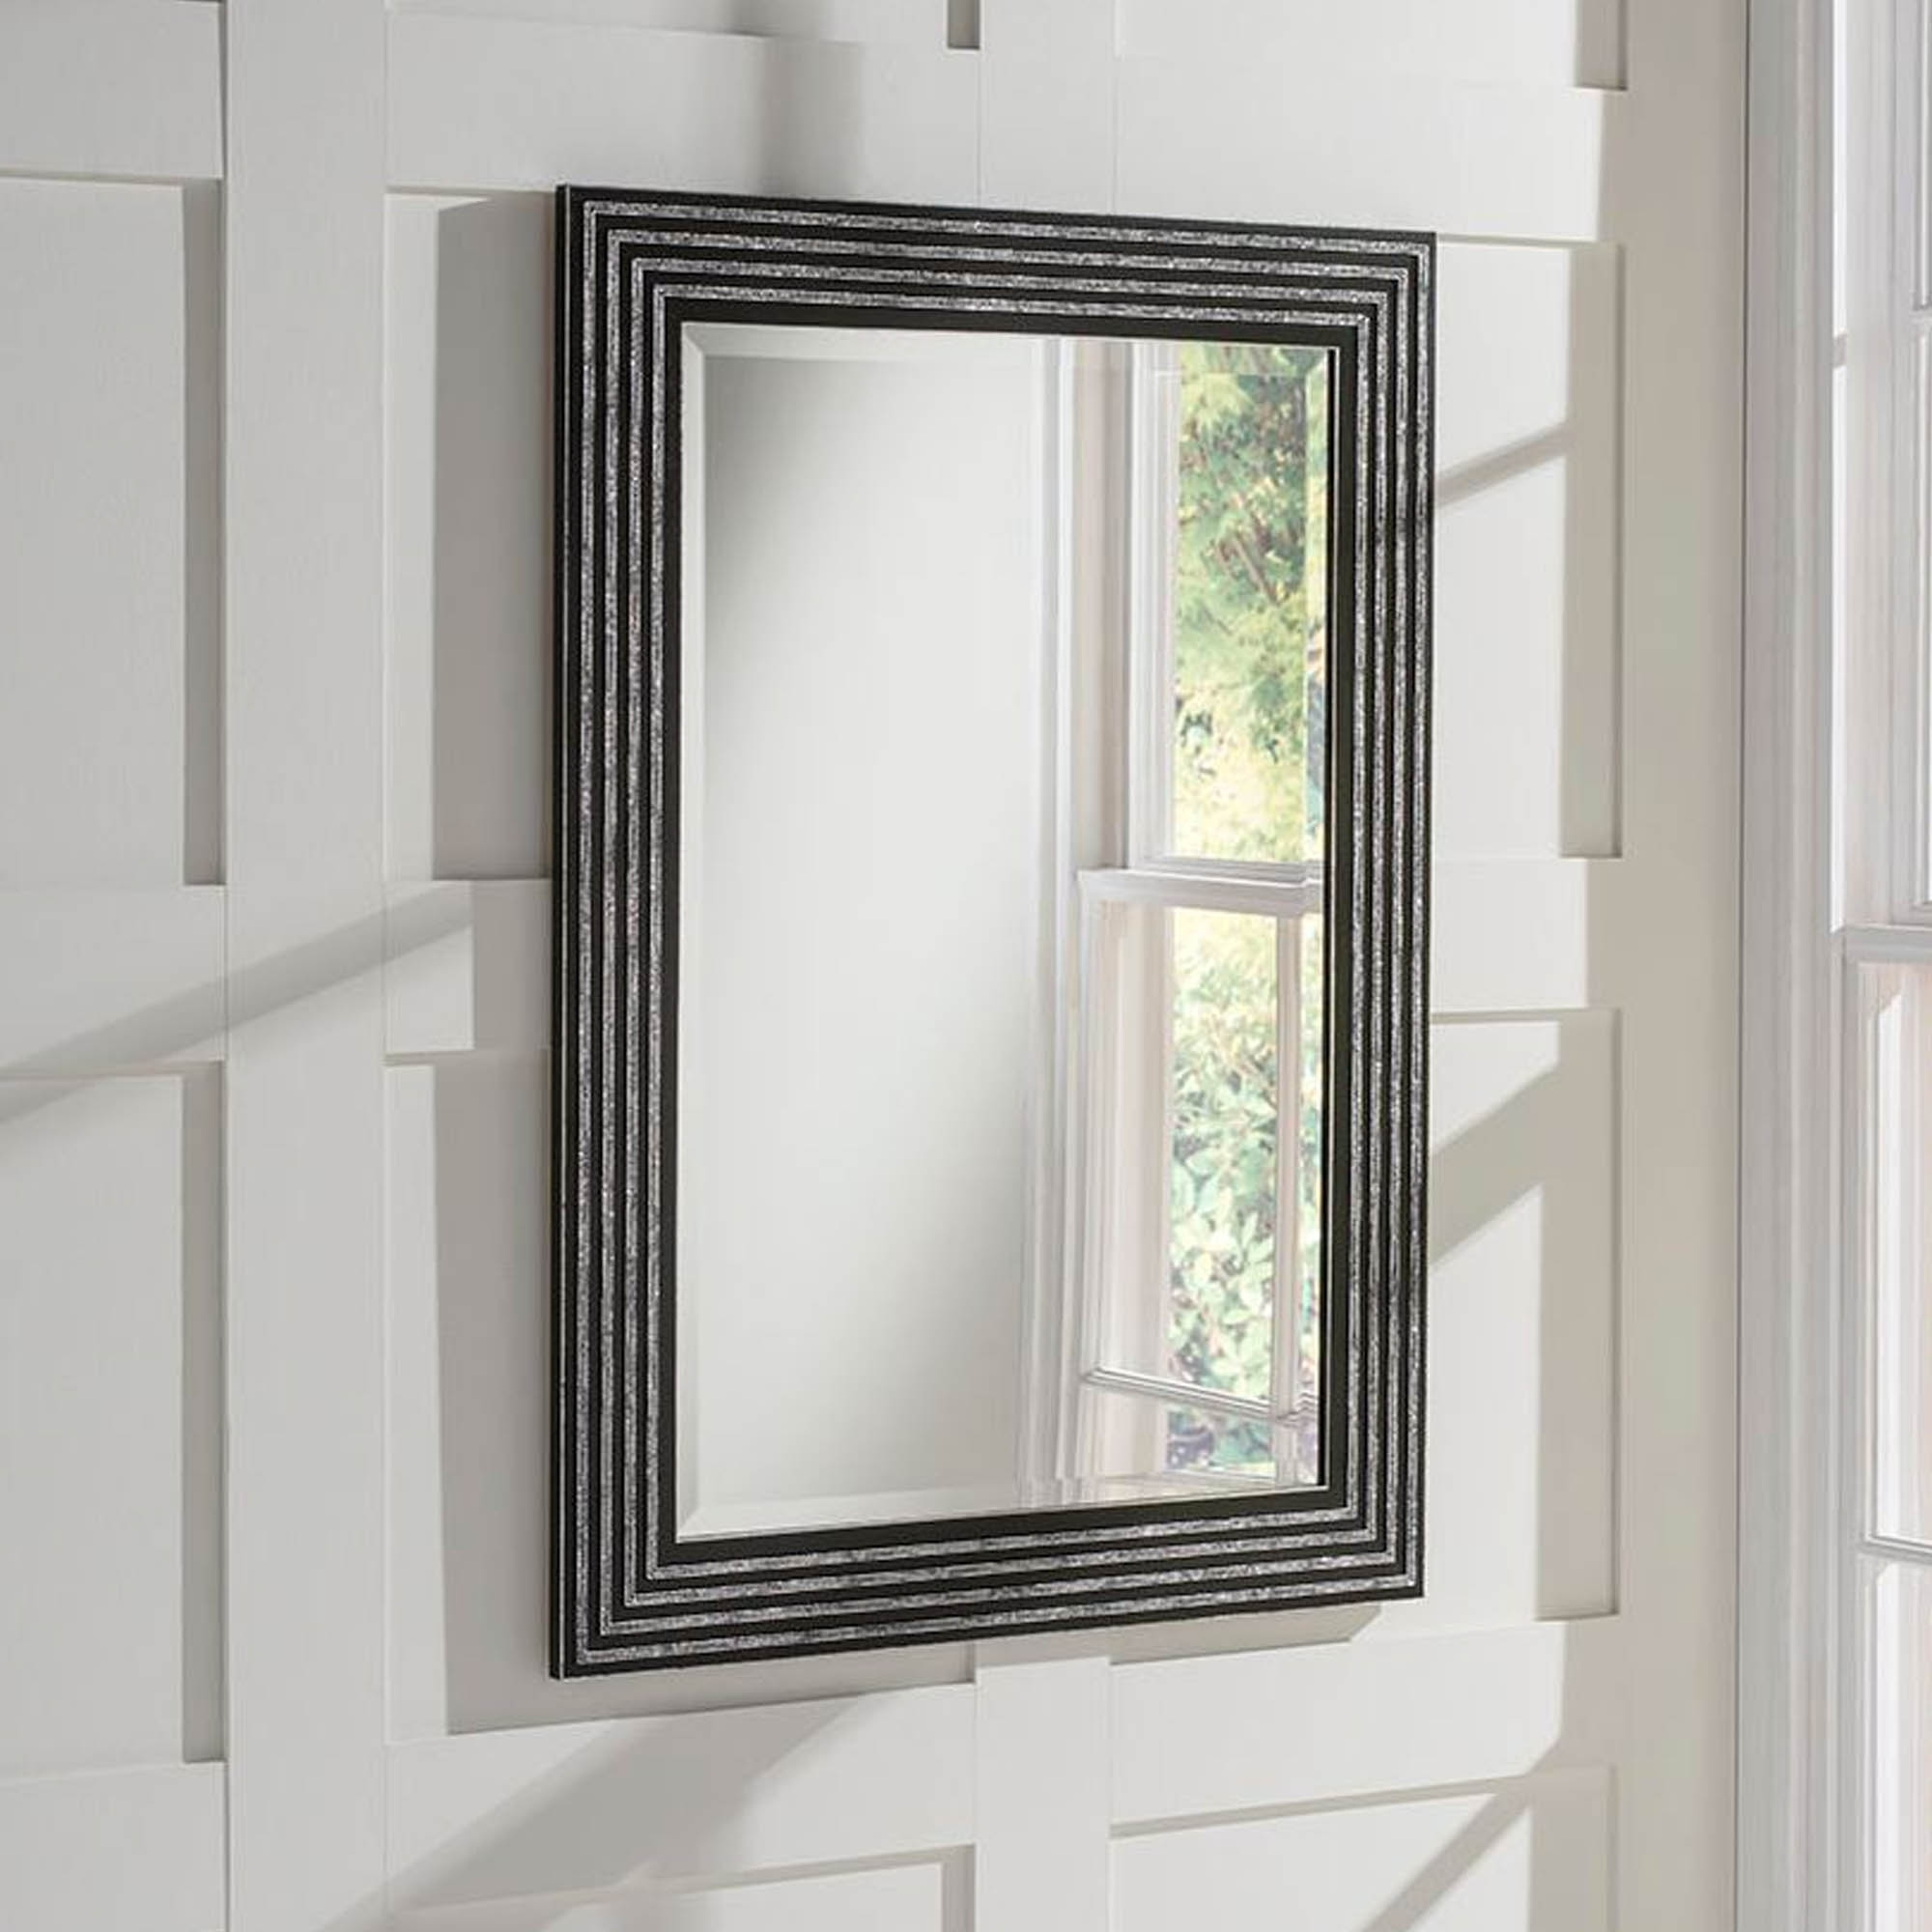 Black And Silver Wall Mirrors Regarding Well Known Black And Silver Decorative Wall Mirror (View 3 of 20)